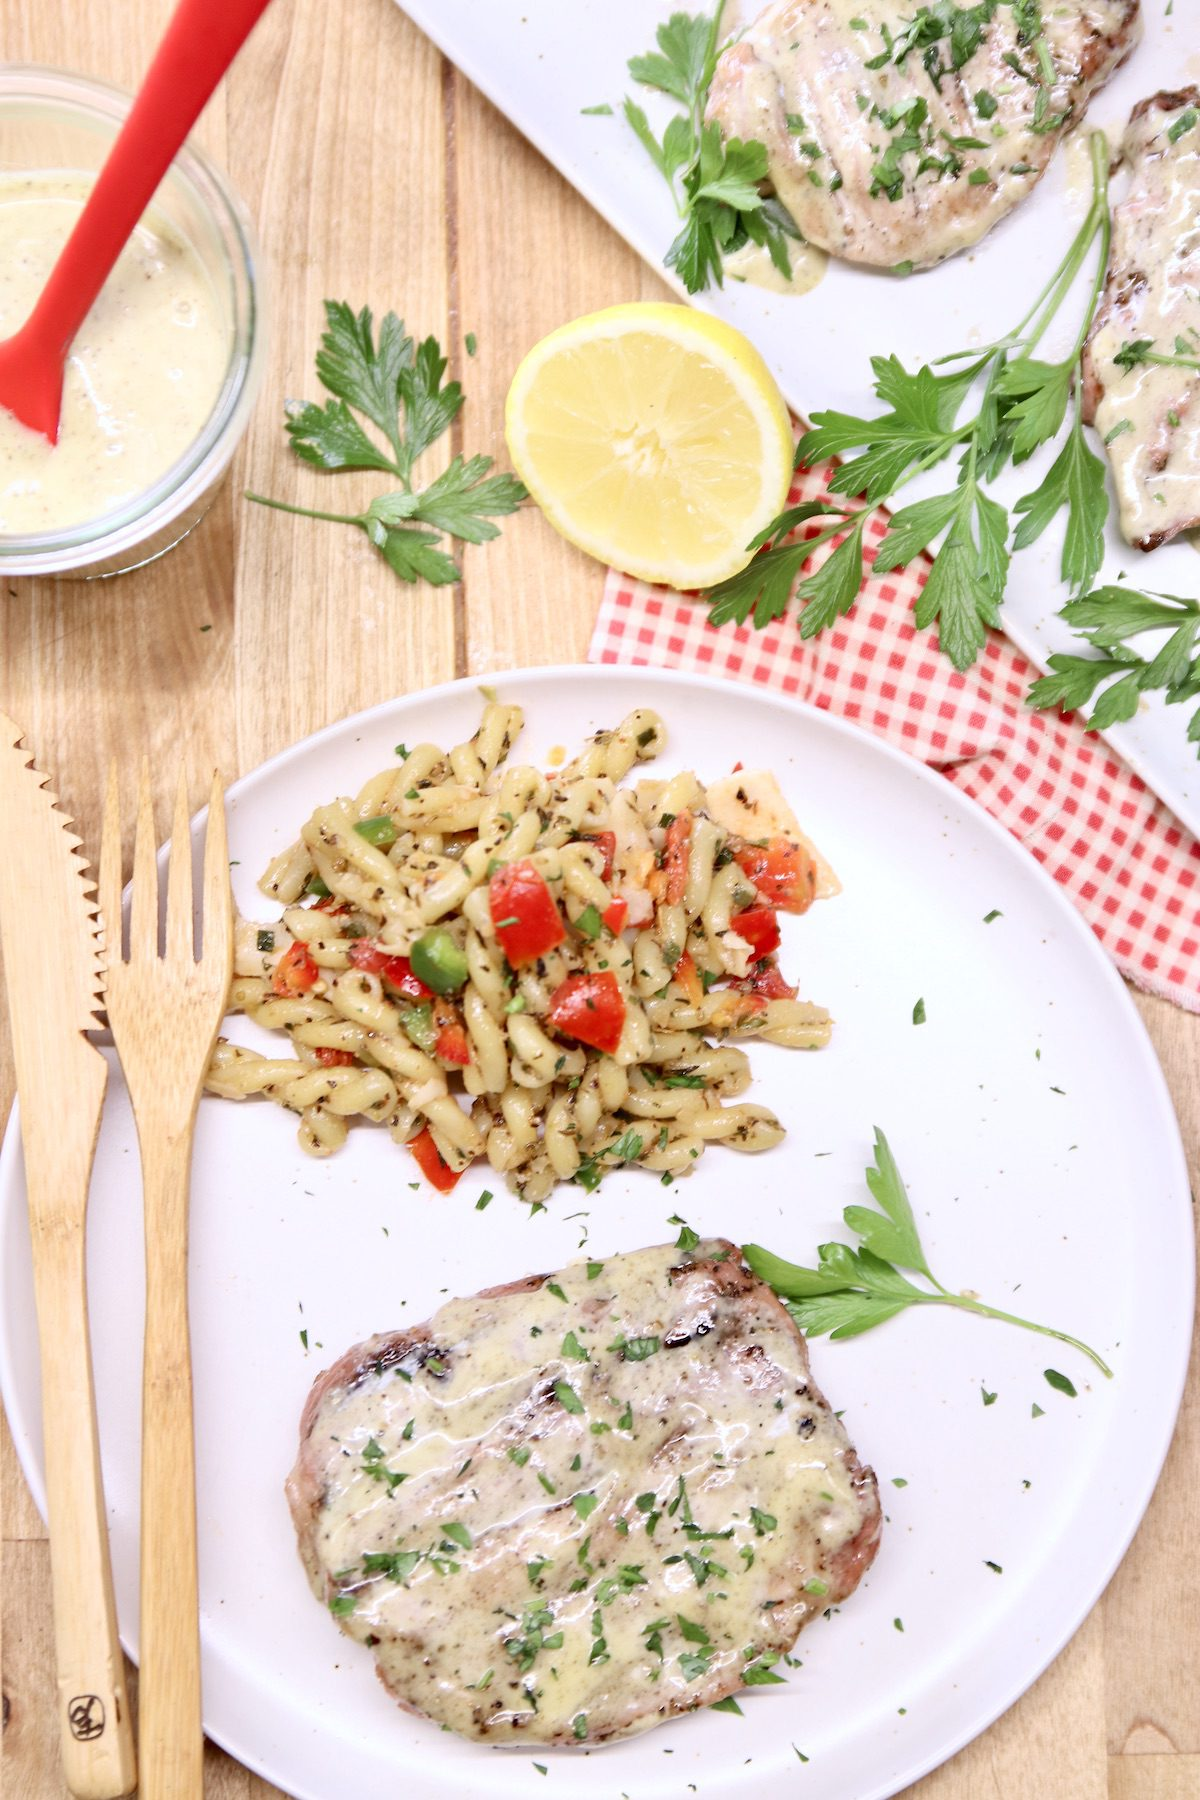 plated pork chop with pasta salad